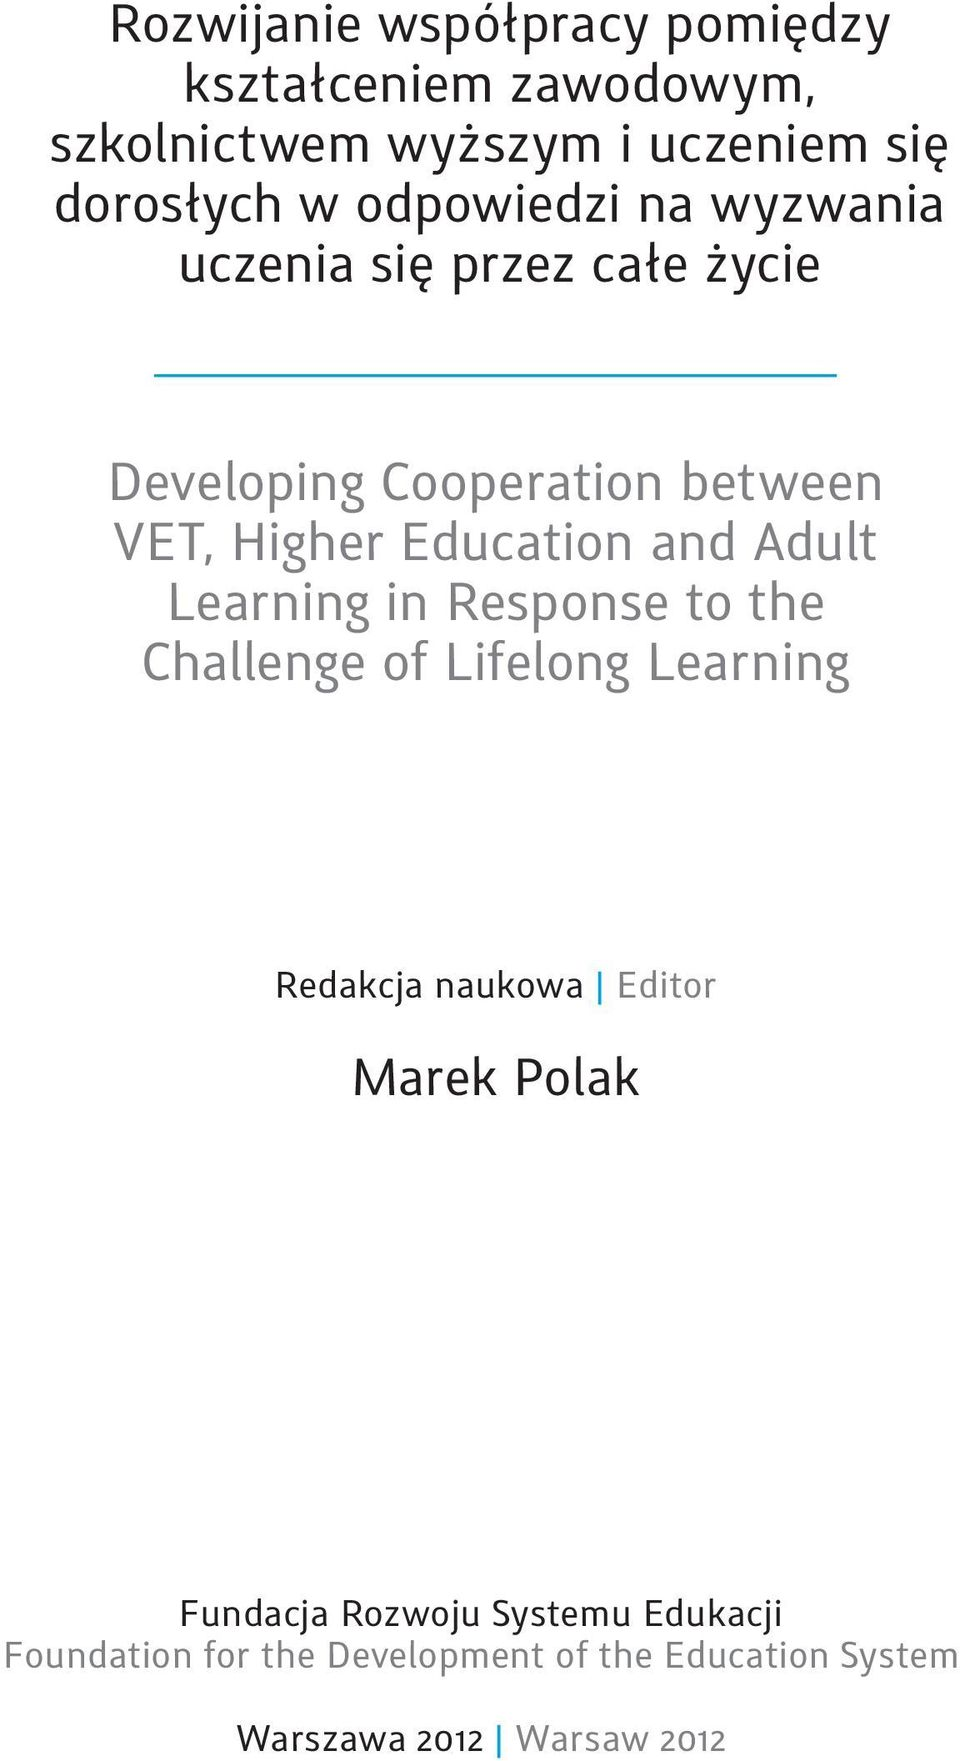 and Adult Learning in Response to the Challenge of Lifelong Learning Redakcja naukowa Editor Marek Polak